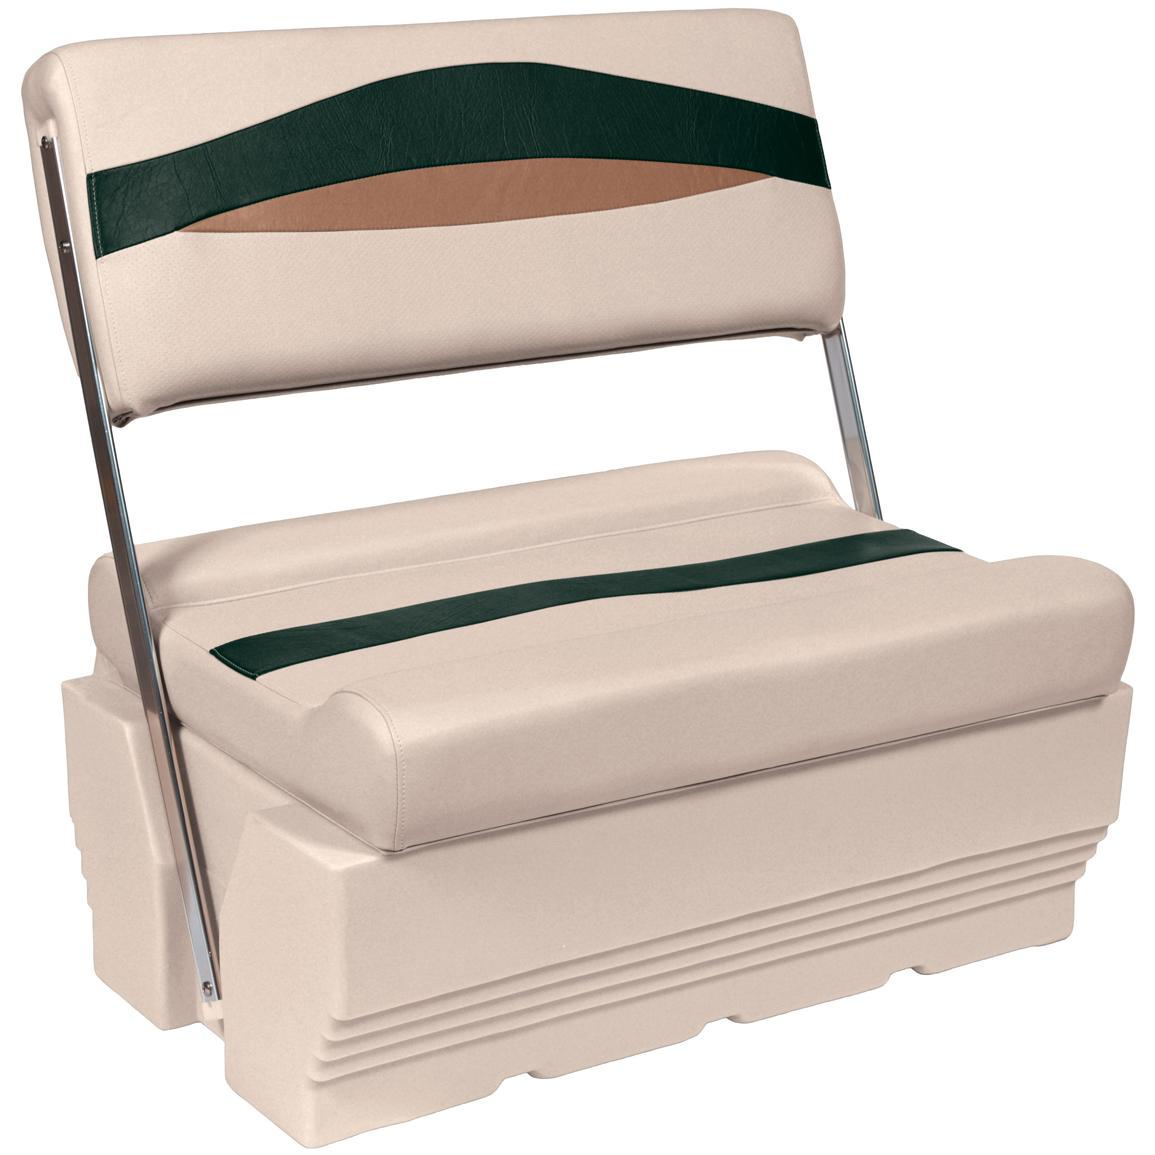 Wise® Premier 1100 Series Pontoon Flip-Flop Seat, Color B